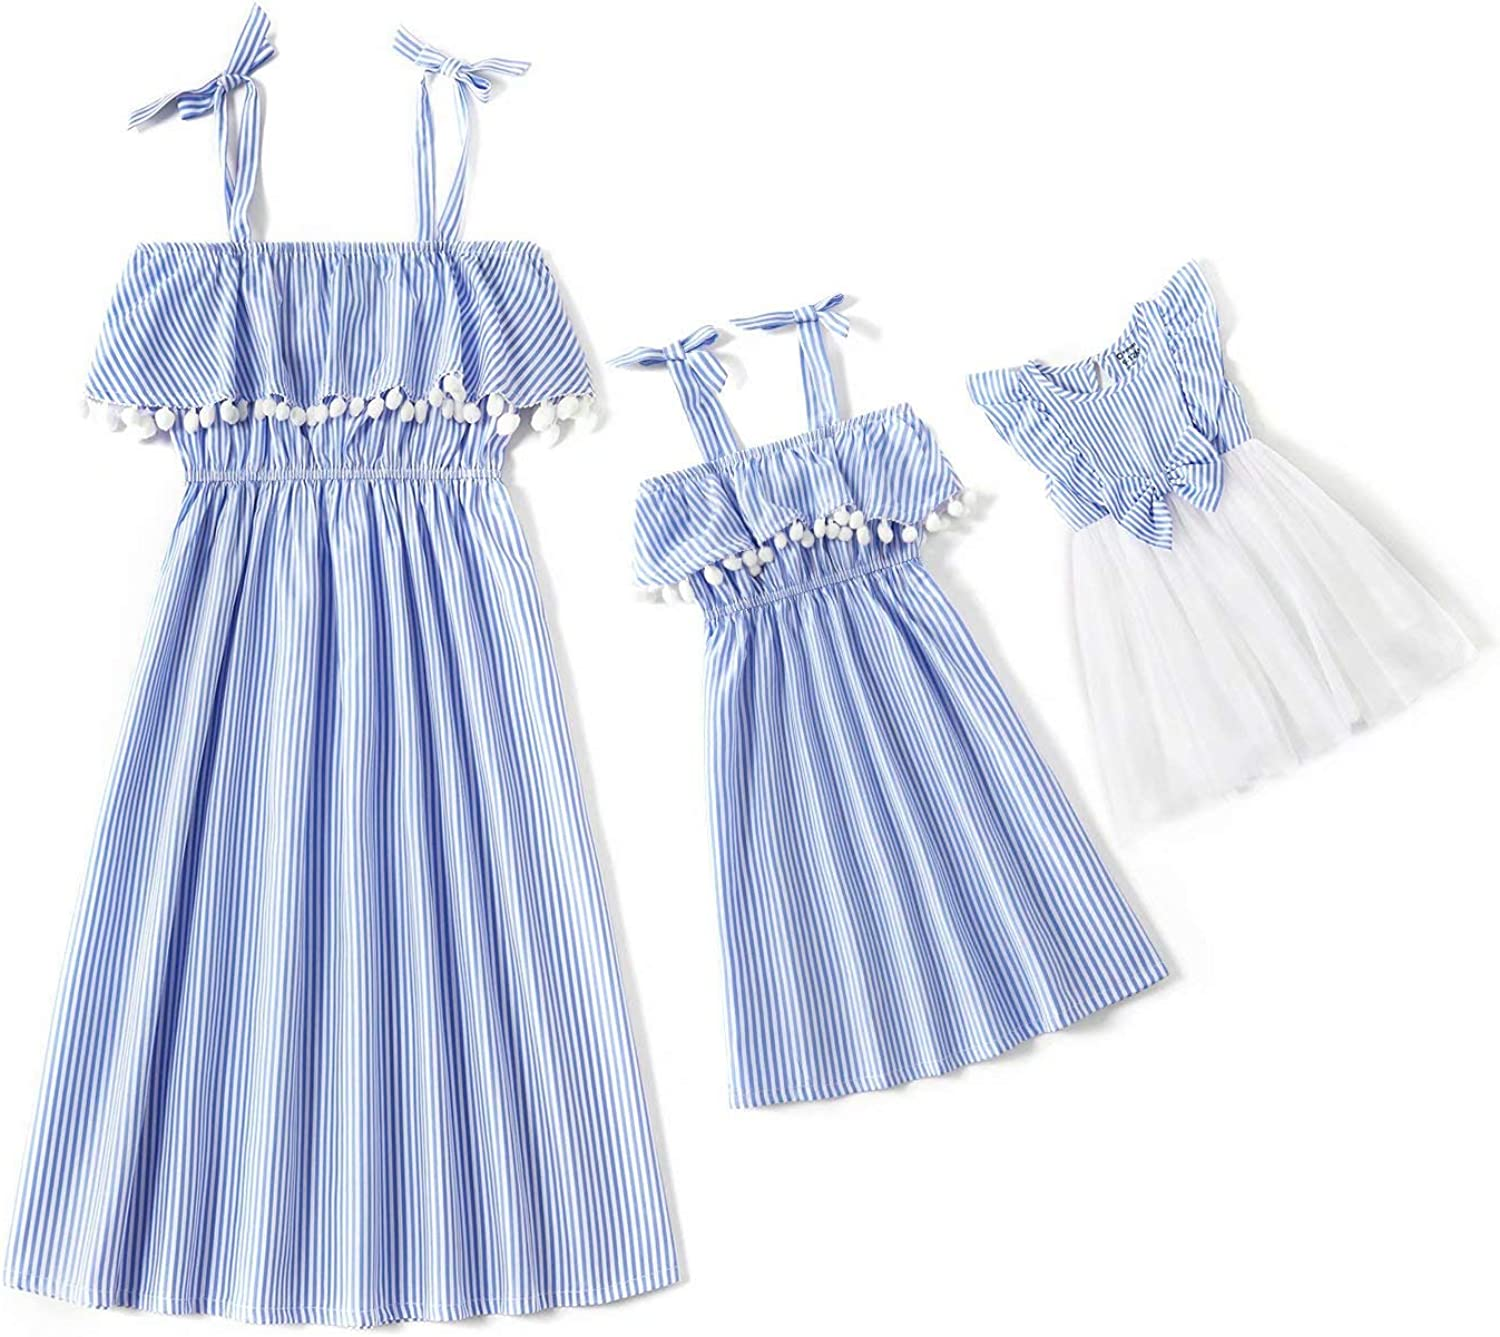 IFFEI Matching Family Outfits with Rainbow 5 popular Silk Suspender Cotton High quality new